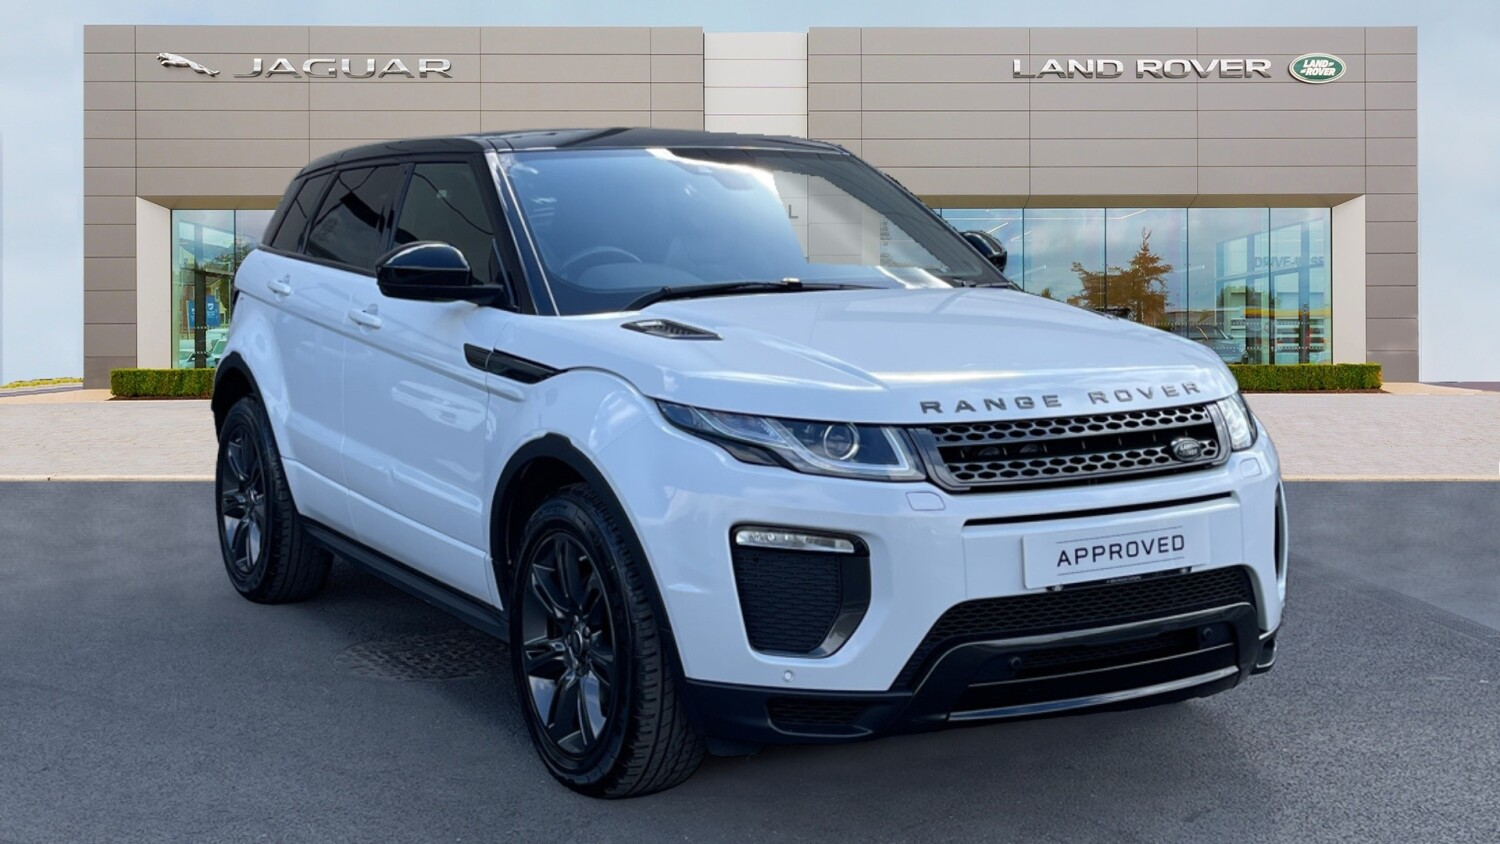 land rover range rover evoque used cars for sale autos post. Black Bedroom Furniture Sets. Home Design Ideas